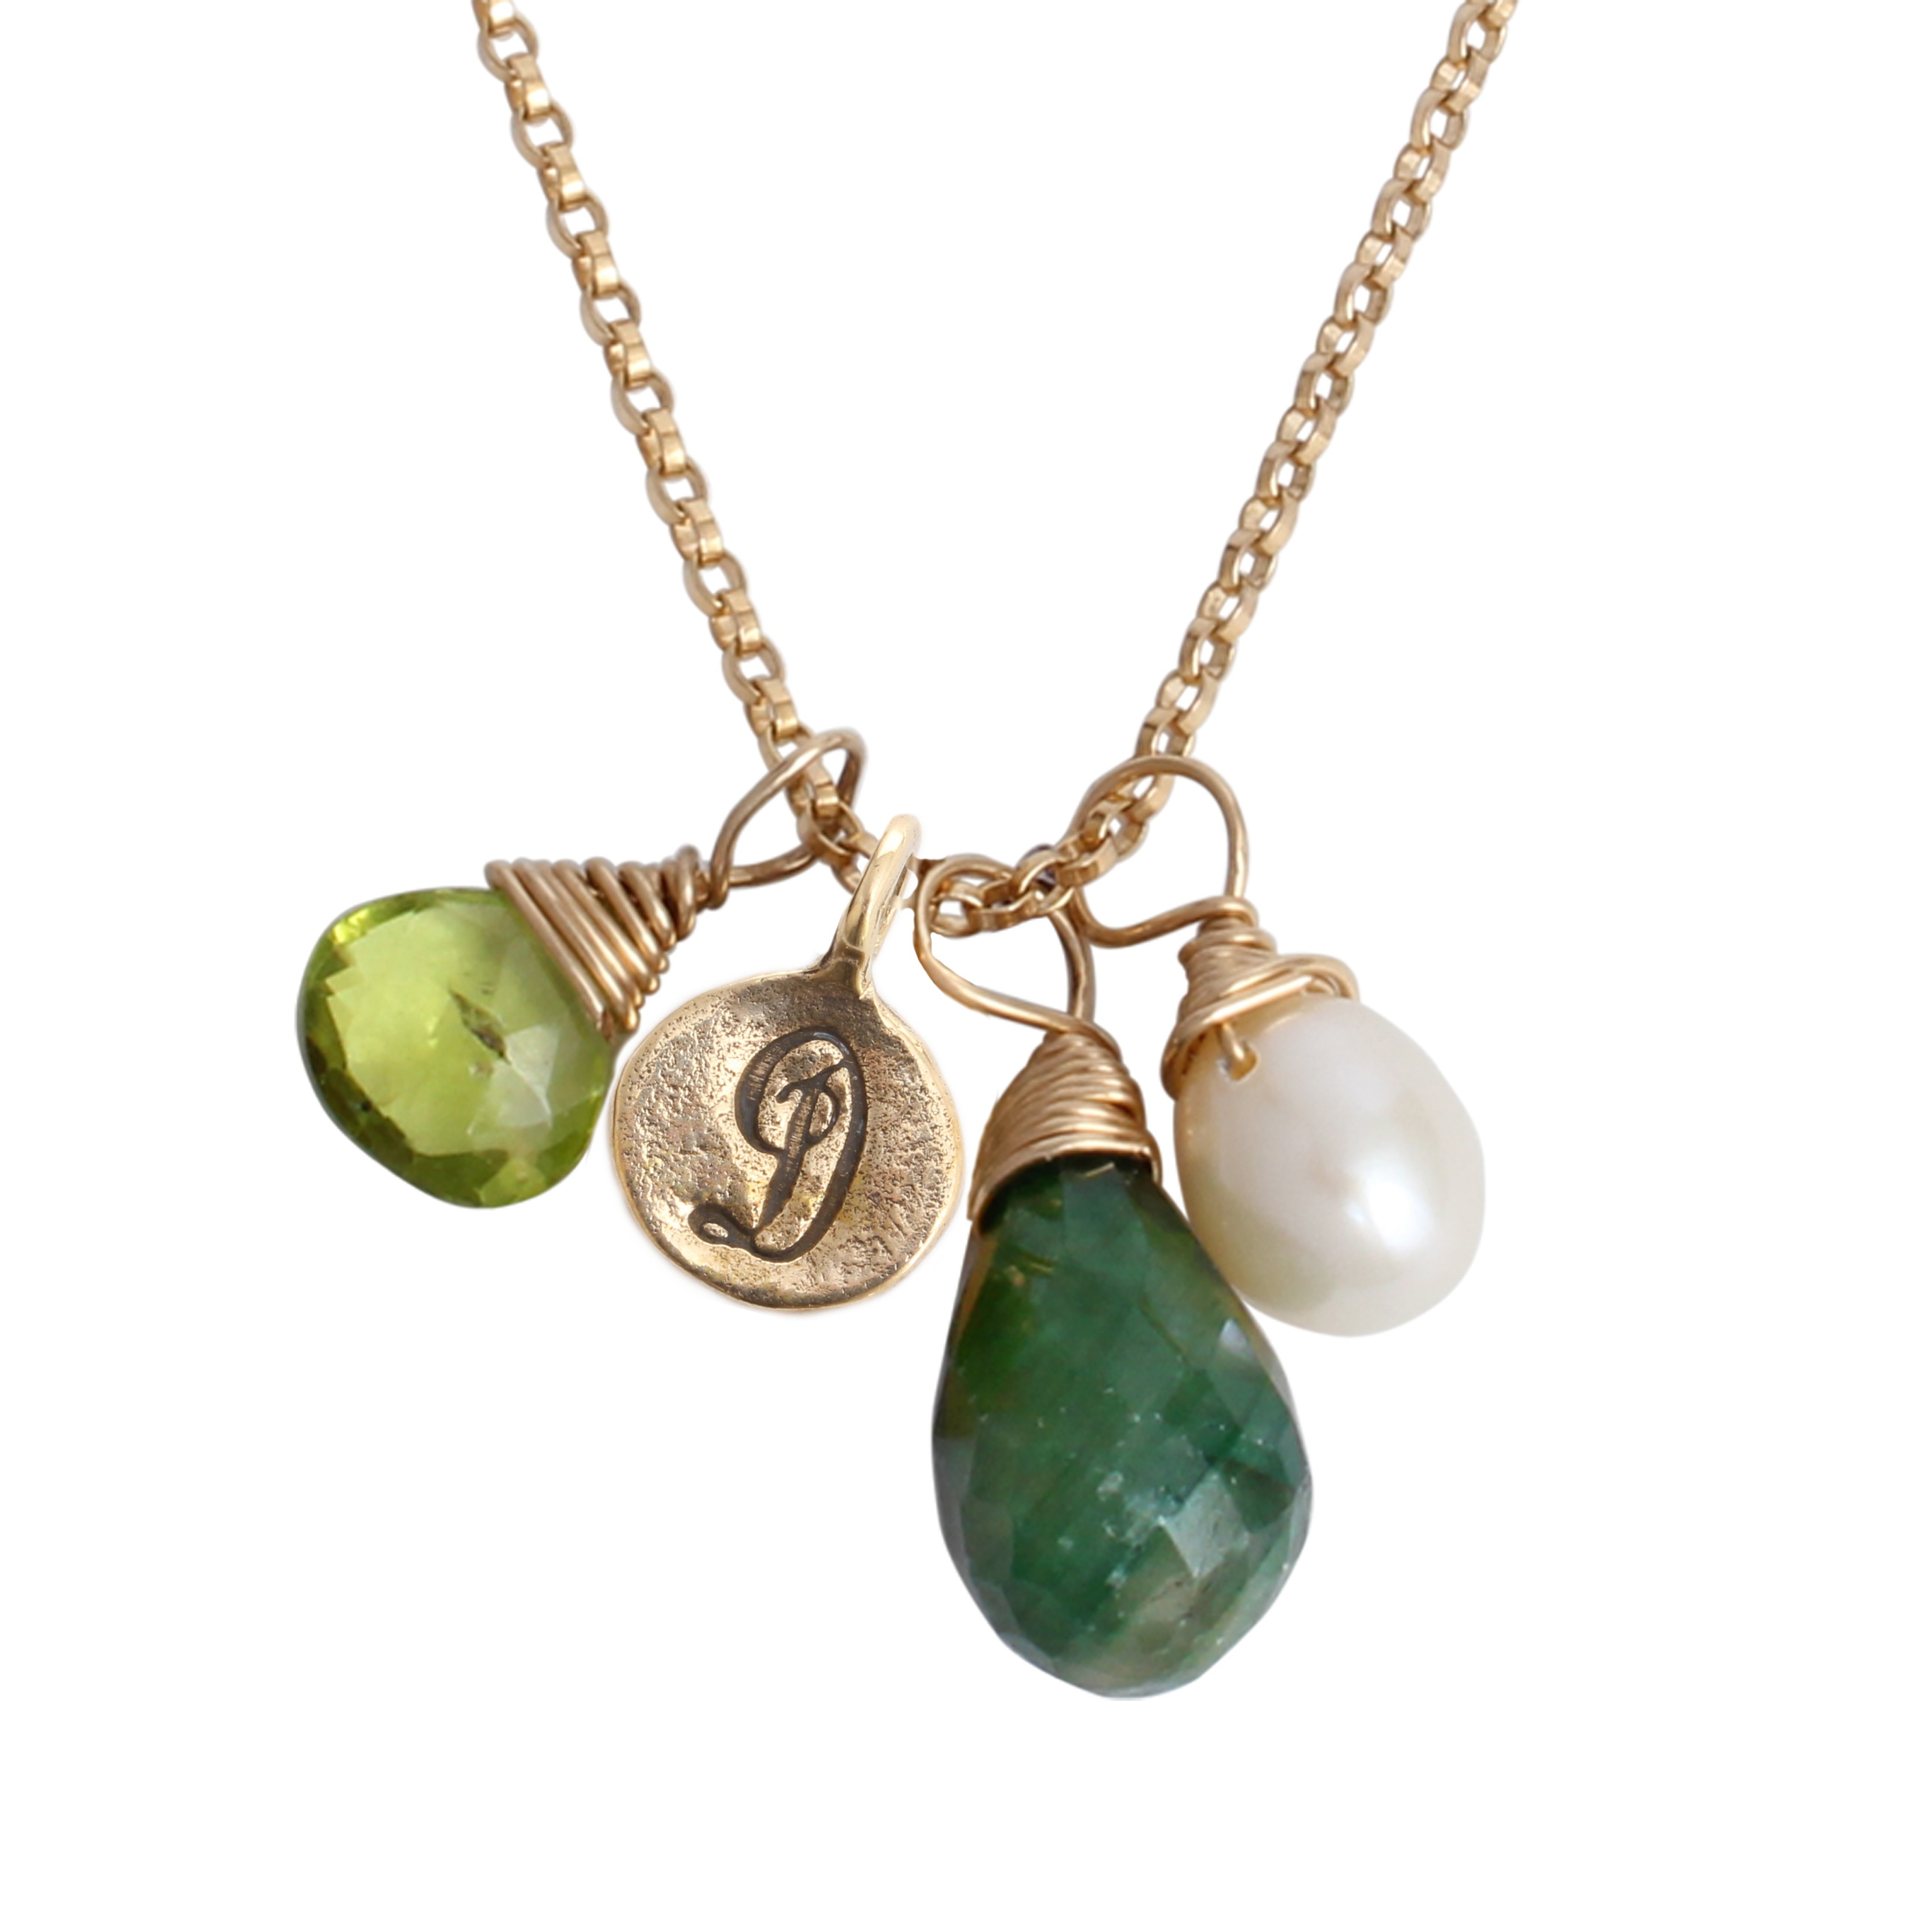 day progressive blogs necklace gift guide mother jewelry days s mothers danique childrens behindthegem banner